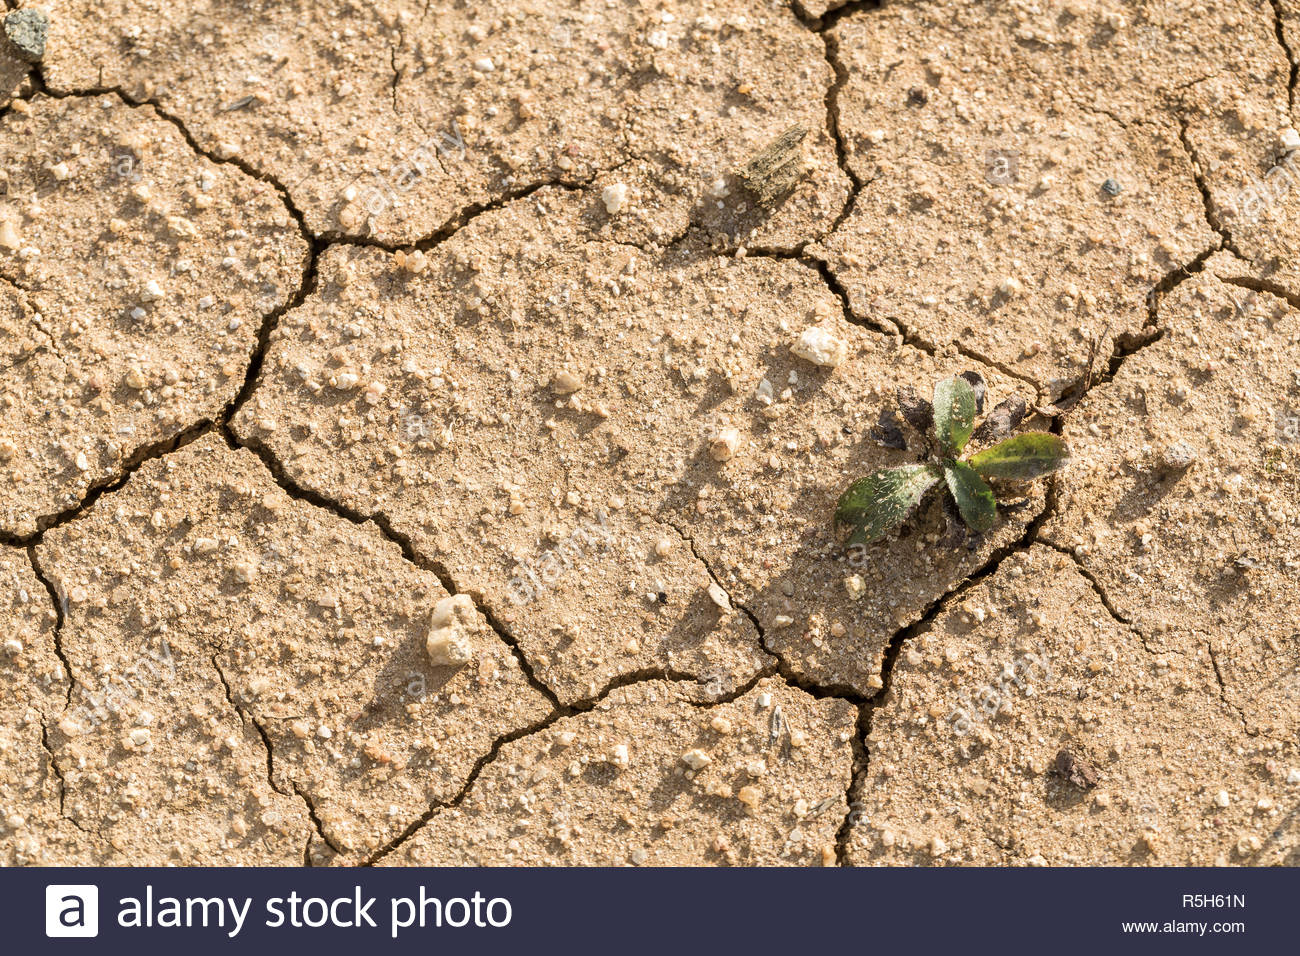 Dry and cracked topsoil in drought-affected farming area. Central Victoria. - Stock Image